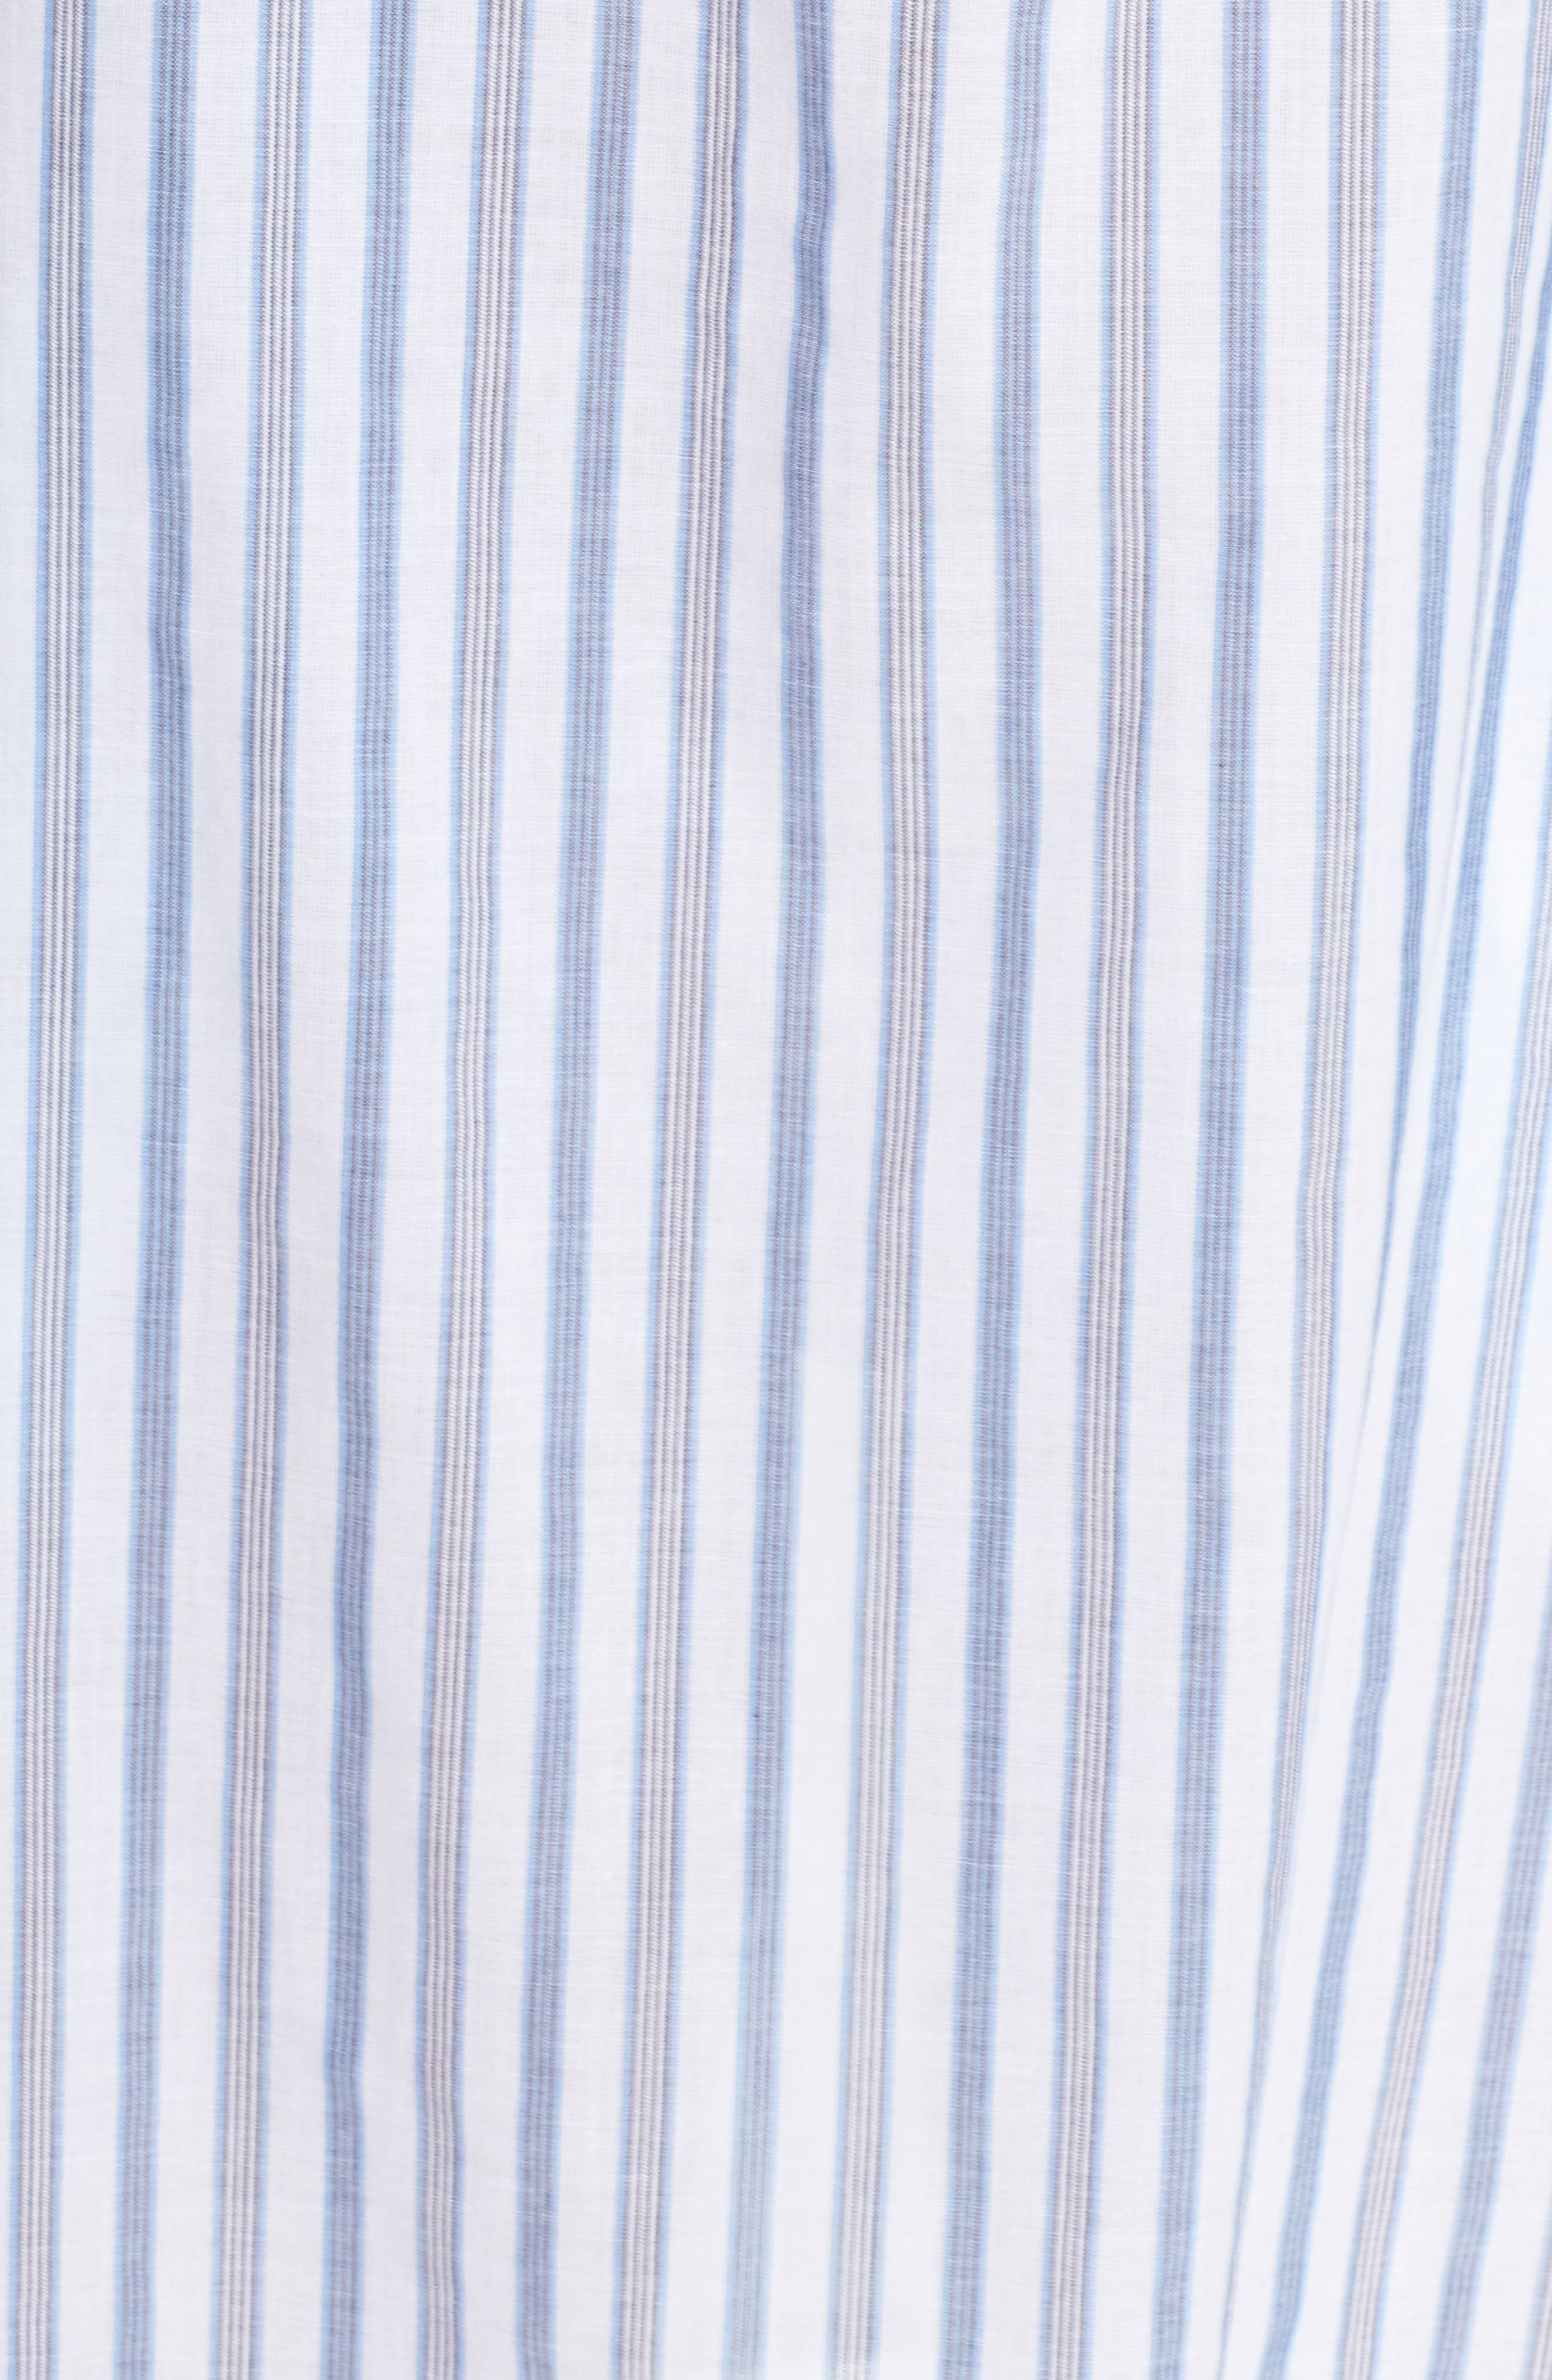 Ticking Stripe Off the Shoulder Cover-Up Dress,                             Alternate thumbnail 5, color,                             White